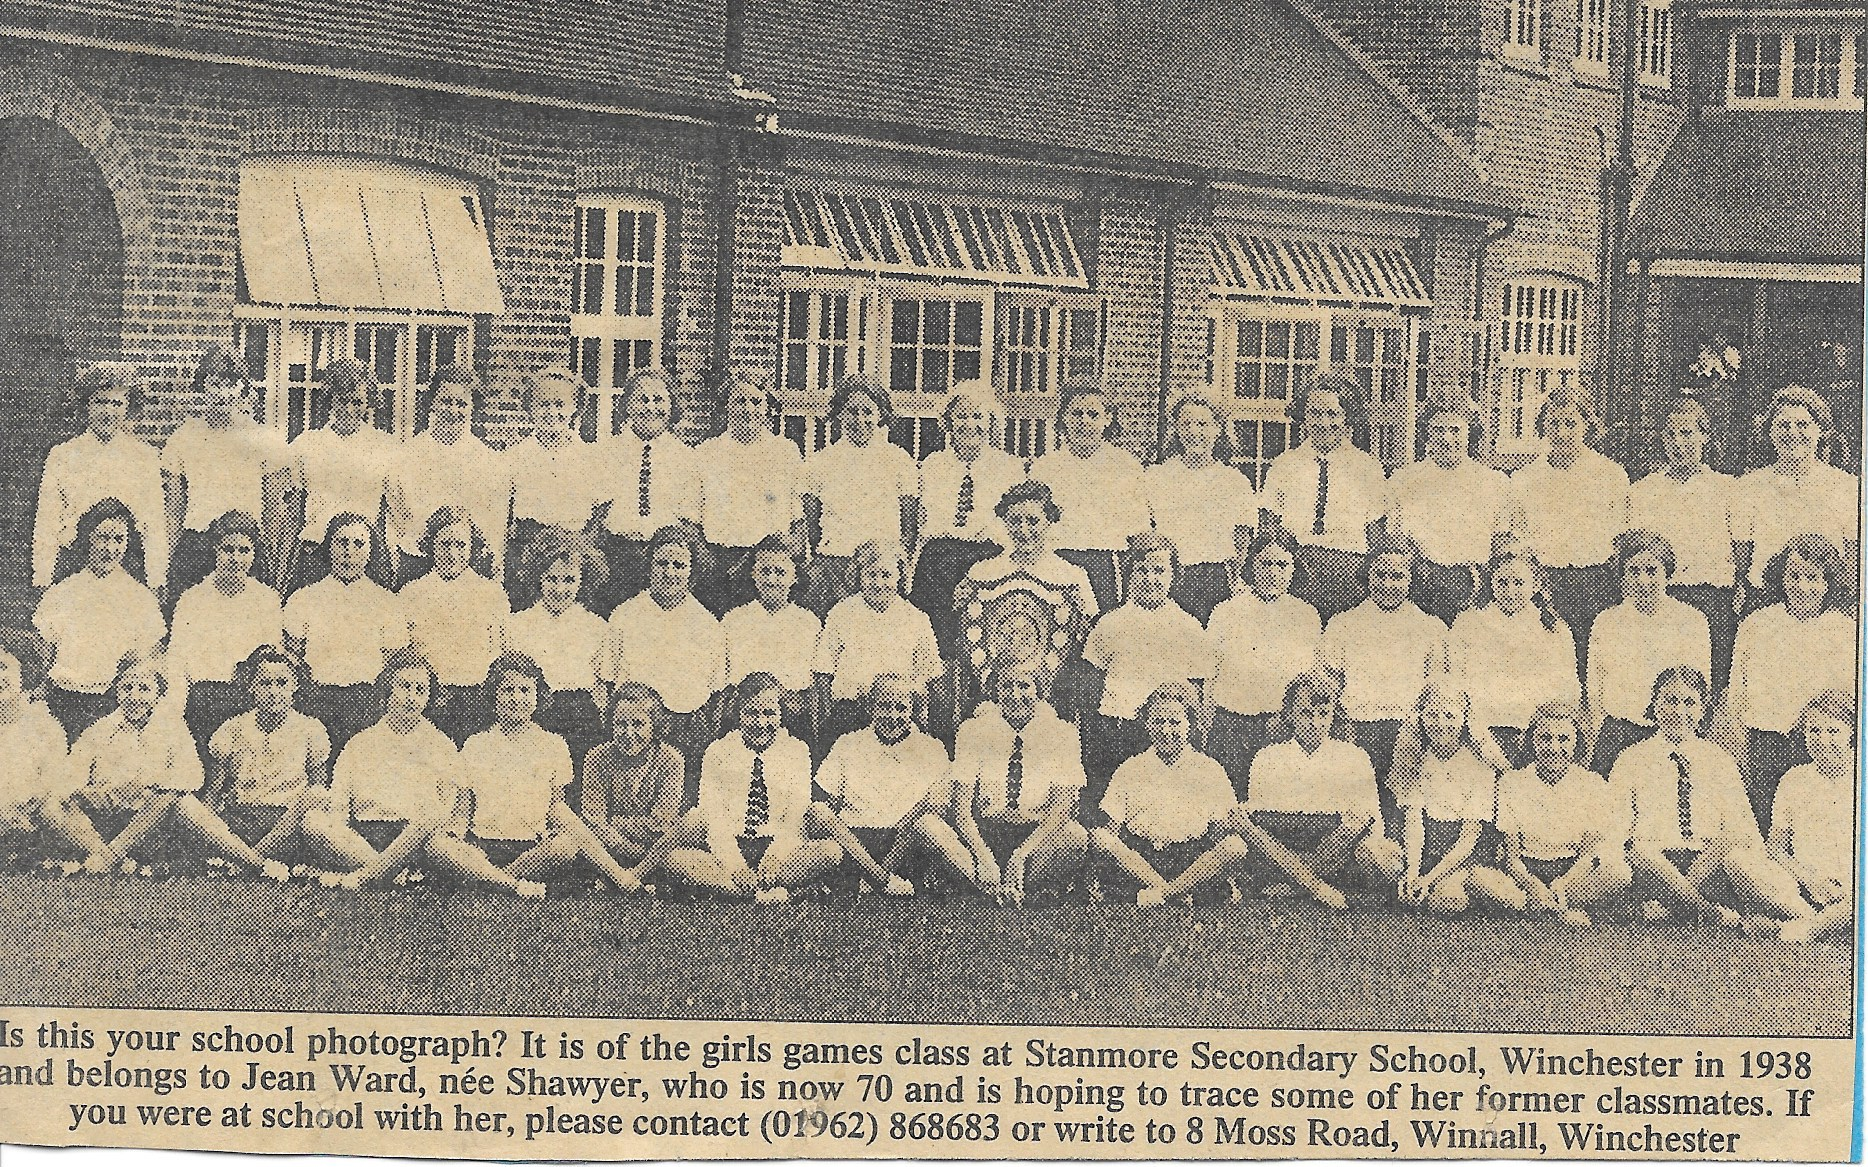 Girls games class at Stanmore Secondary School, Winchester in 1938